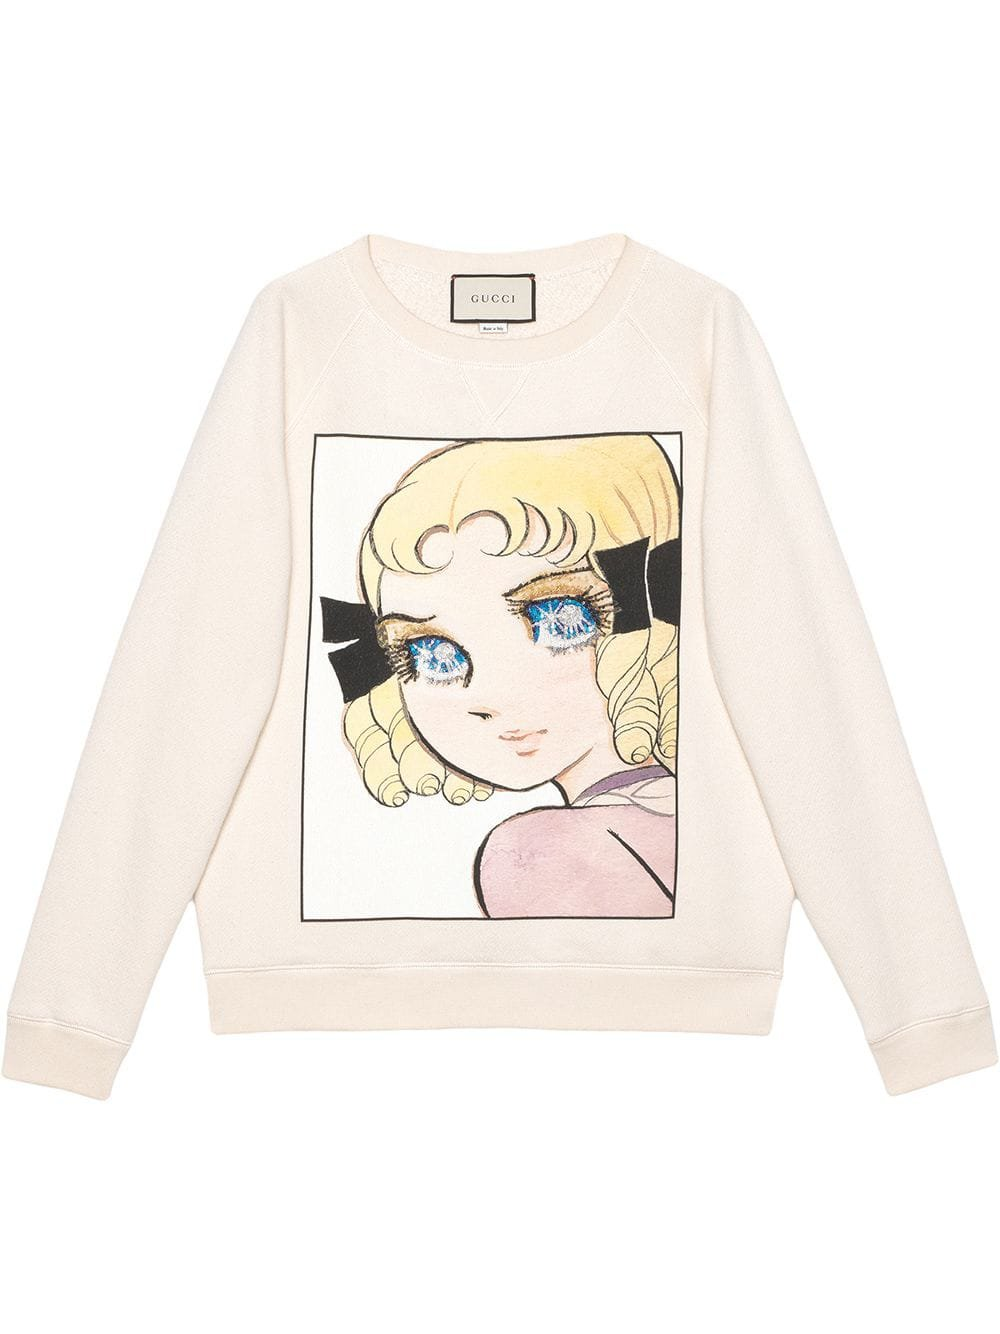 Gucci Cotton sweatshirt with manga print $1,800 - Buy SS19 Online - Fast Global Delivery, Price